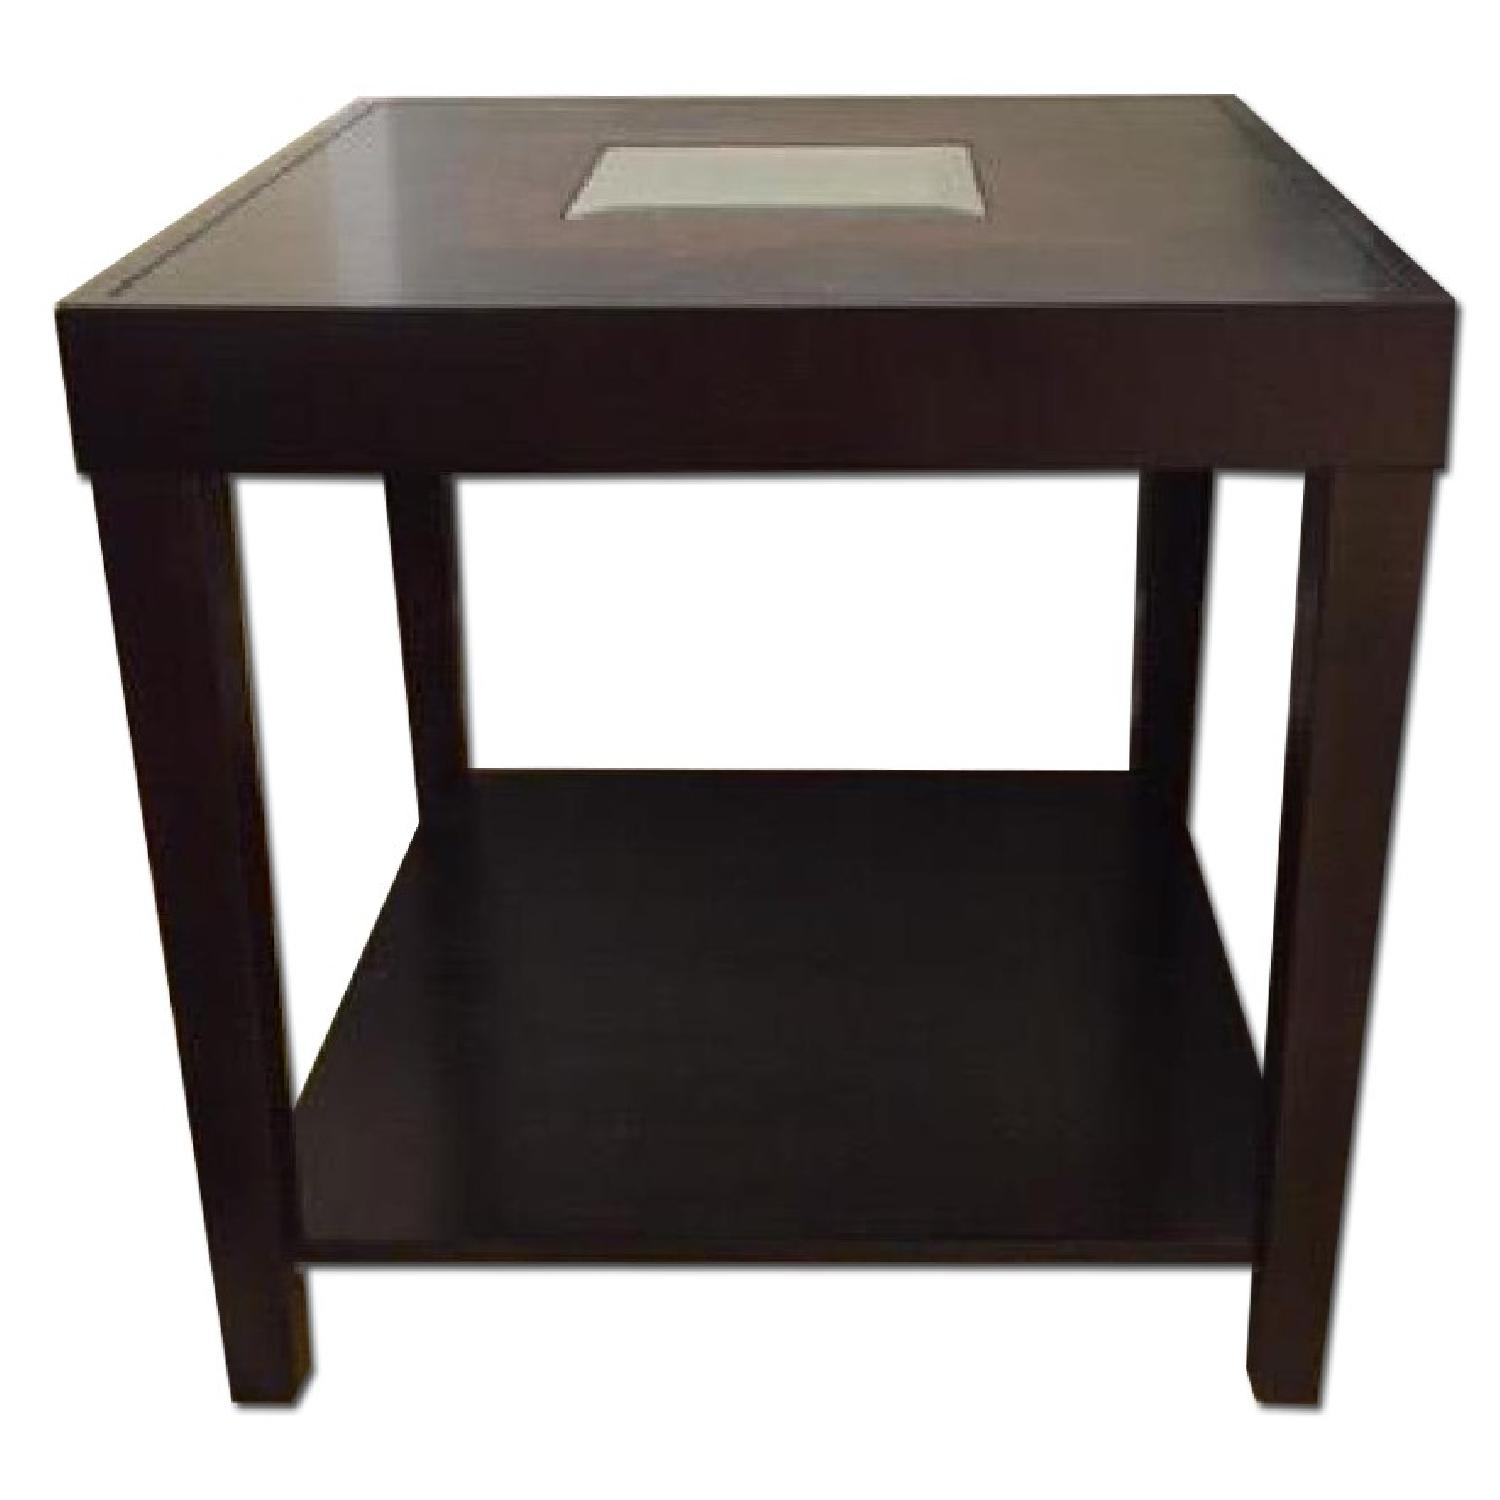 Dark Wood Side Table w/ Mirrored Center - image-0